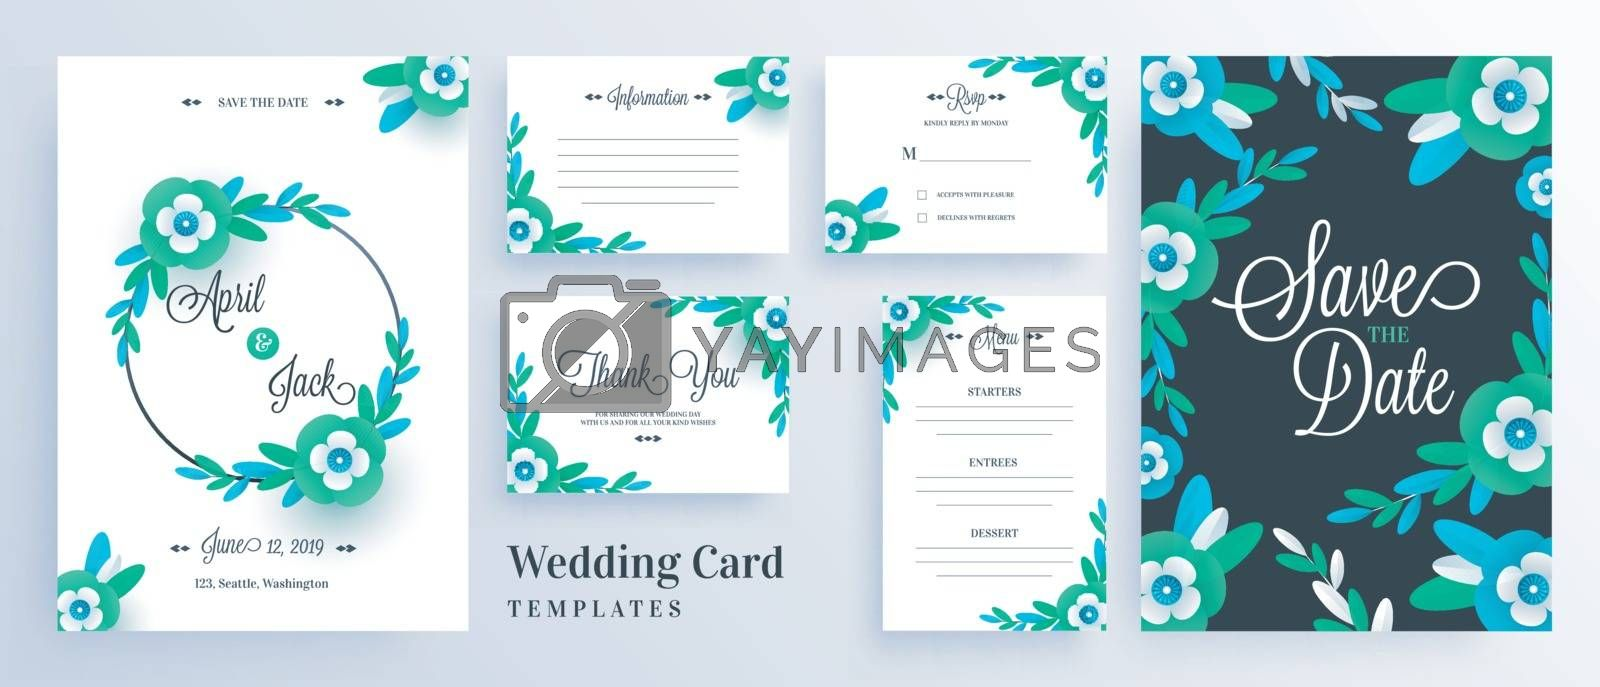 Royalty free image of Green paper cut flowers decorated wedding invitation card templa by aispl